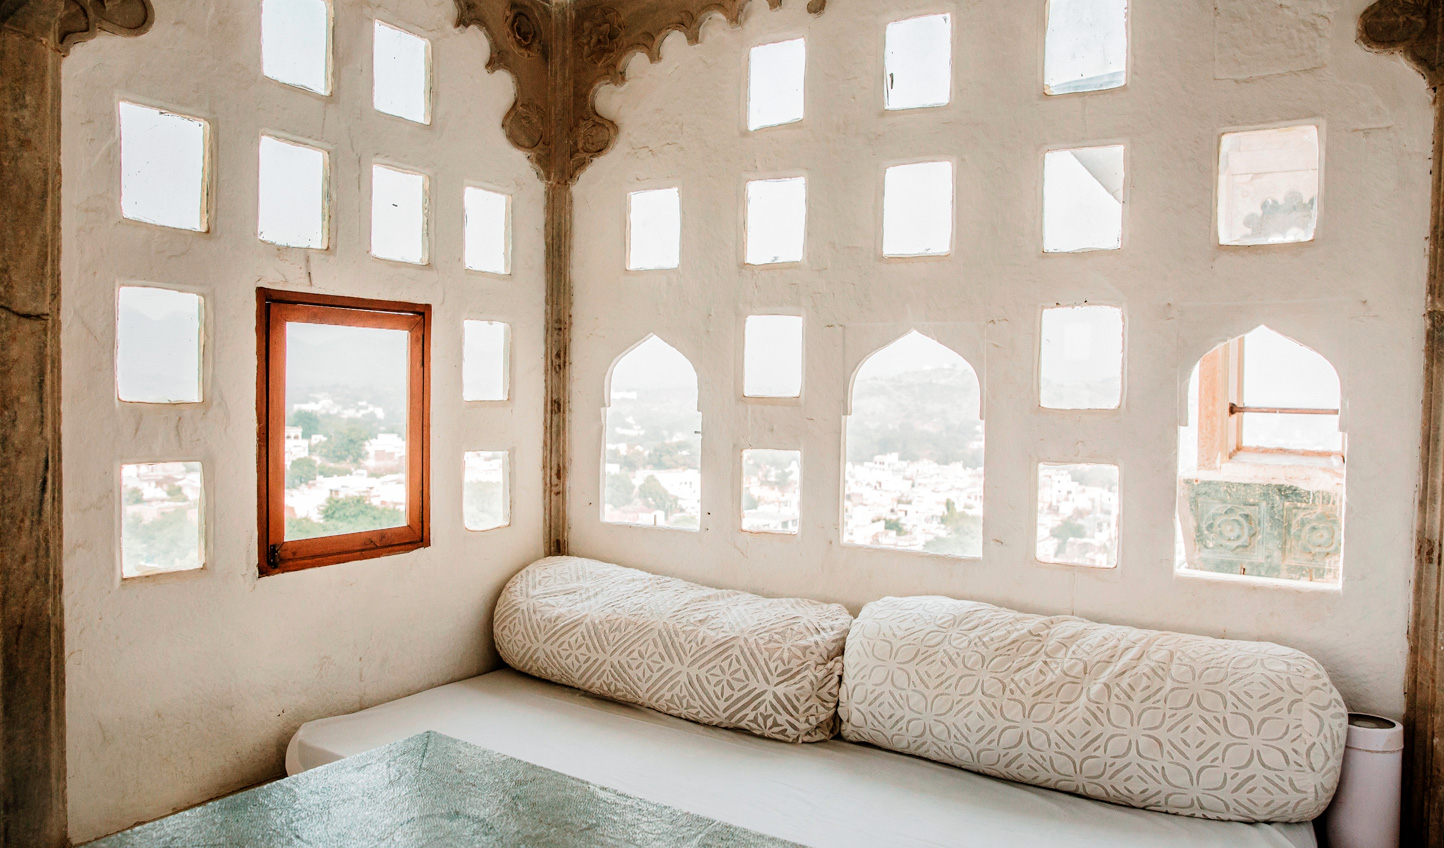 Gaze out over the surrounding landscapes from the authentic porticoes